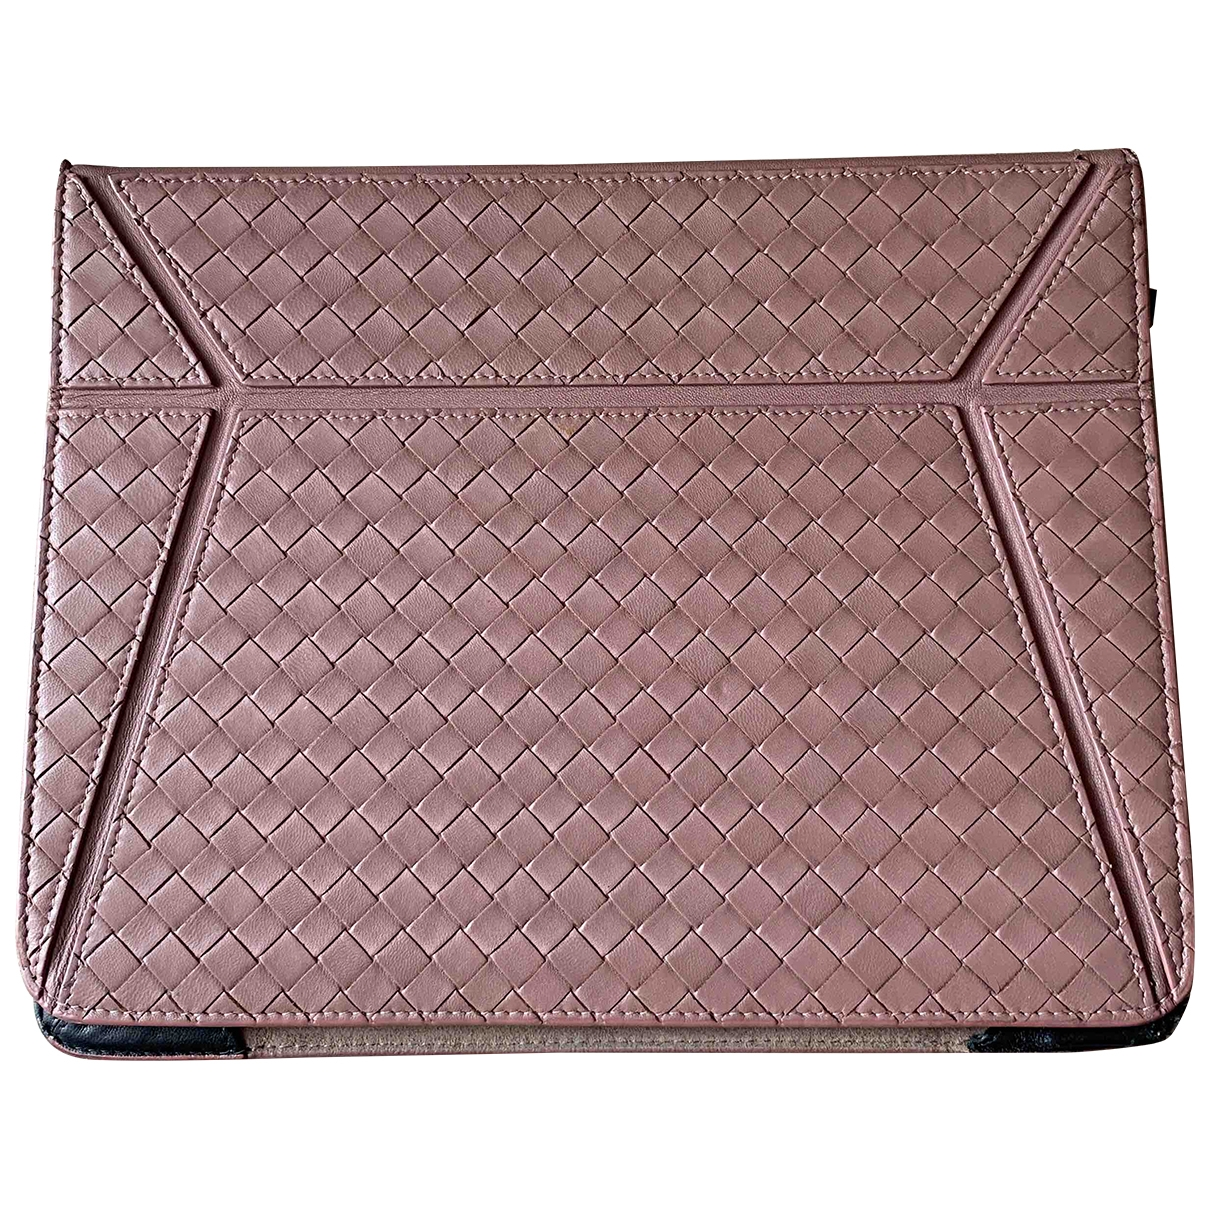 Bottega Veneta \N Pink Leather Accessories for Life & Living \N